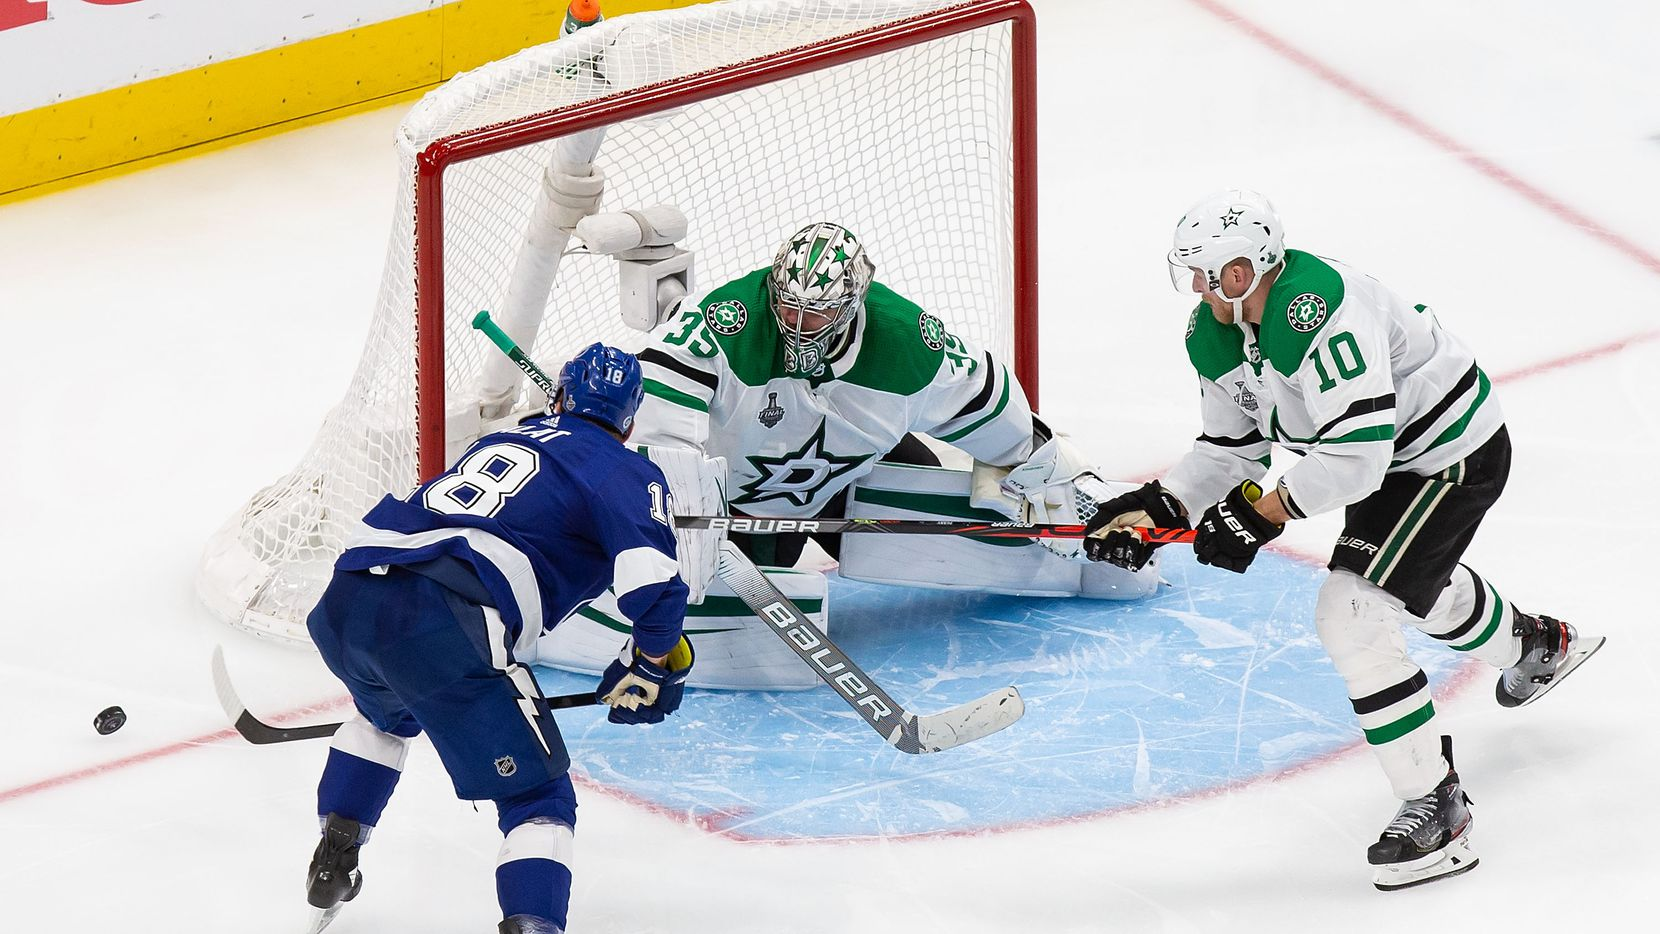 Corey Perry (10) and goaltender Anton Khudobin (35) of the Dallas Stars fend off Ondrej Palat (18) of the Tampa Bay Lightning during Game Two of the Stanley Cup Final at Rogers Place in Edmonton, Alberta, Canada on Monday, September 21, 2020.